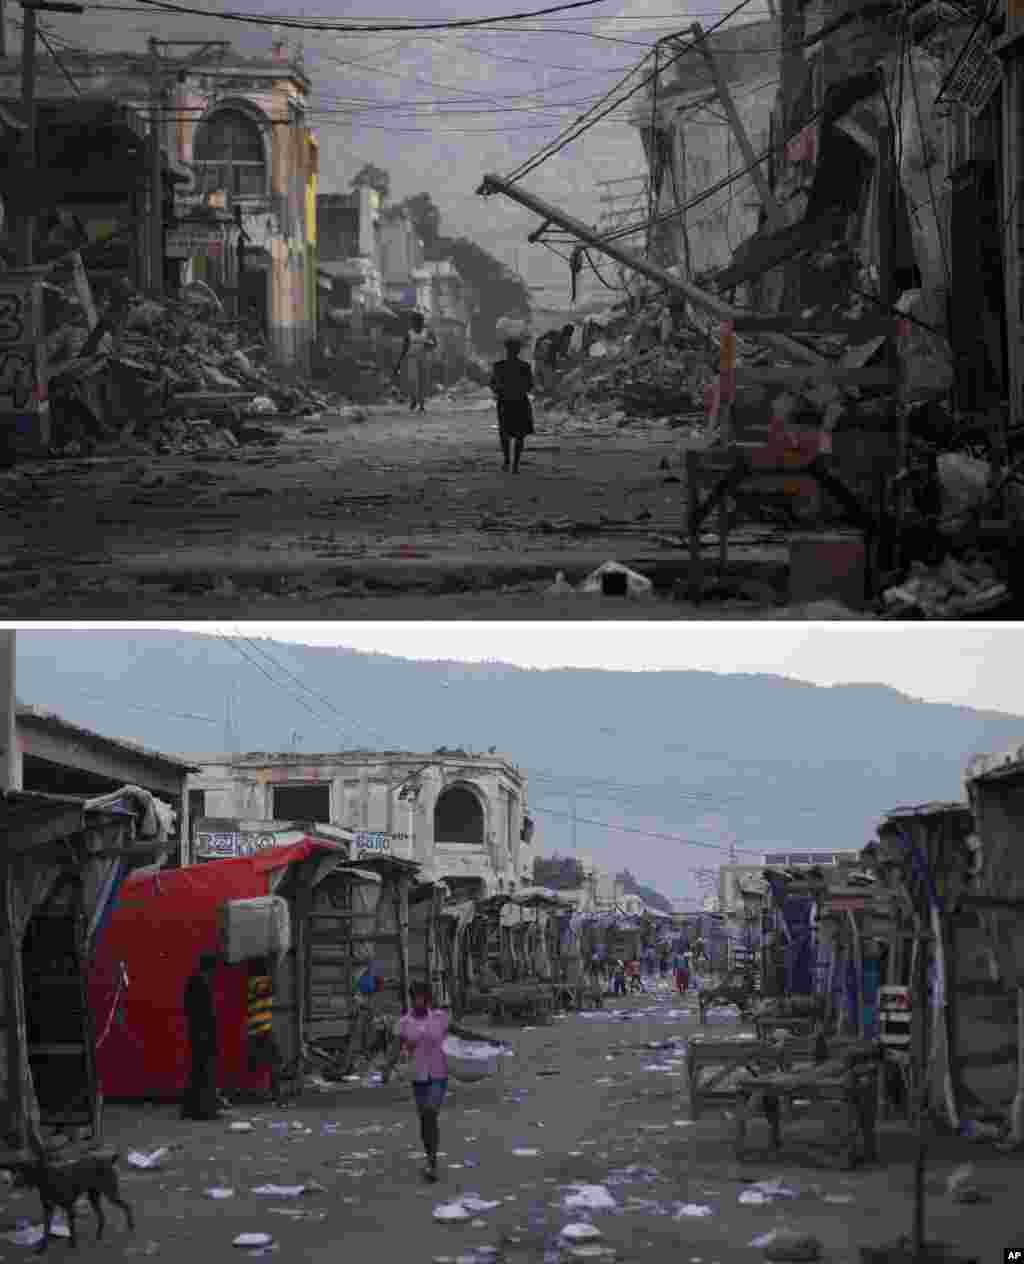 FILE - At top, Jan. 20, 2010, a street devastated by the earthquake that struck one week earlier in Port-au-Prince; below, Jan. 10, 2015, the same location.